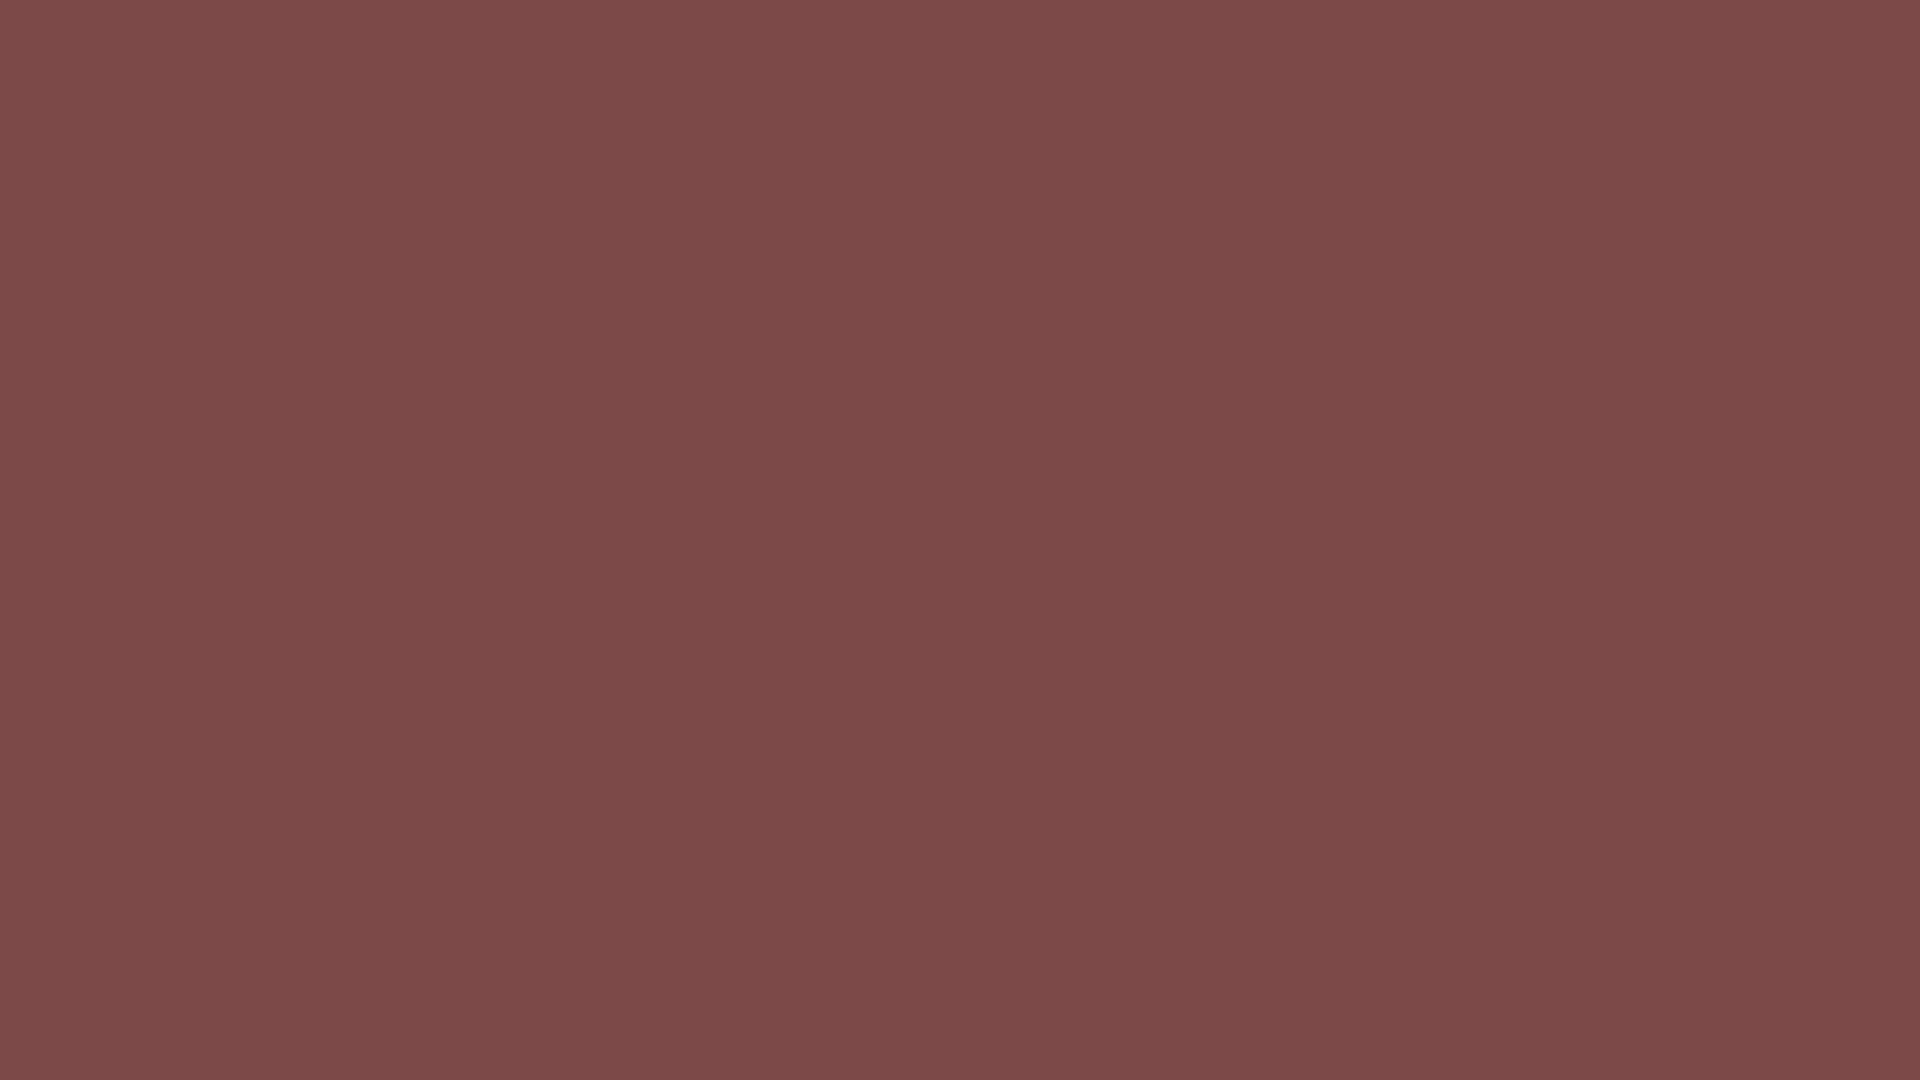 1920x1080 Tuscan Red Solid Color Background